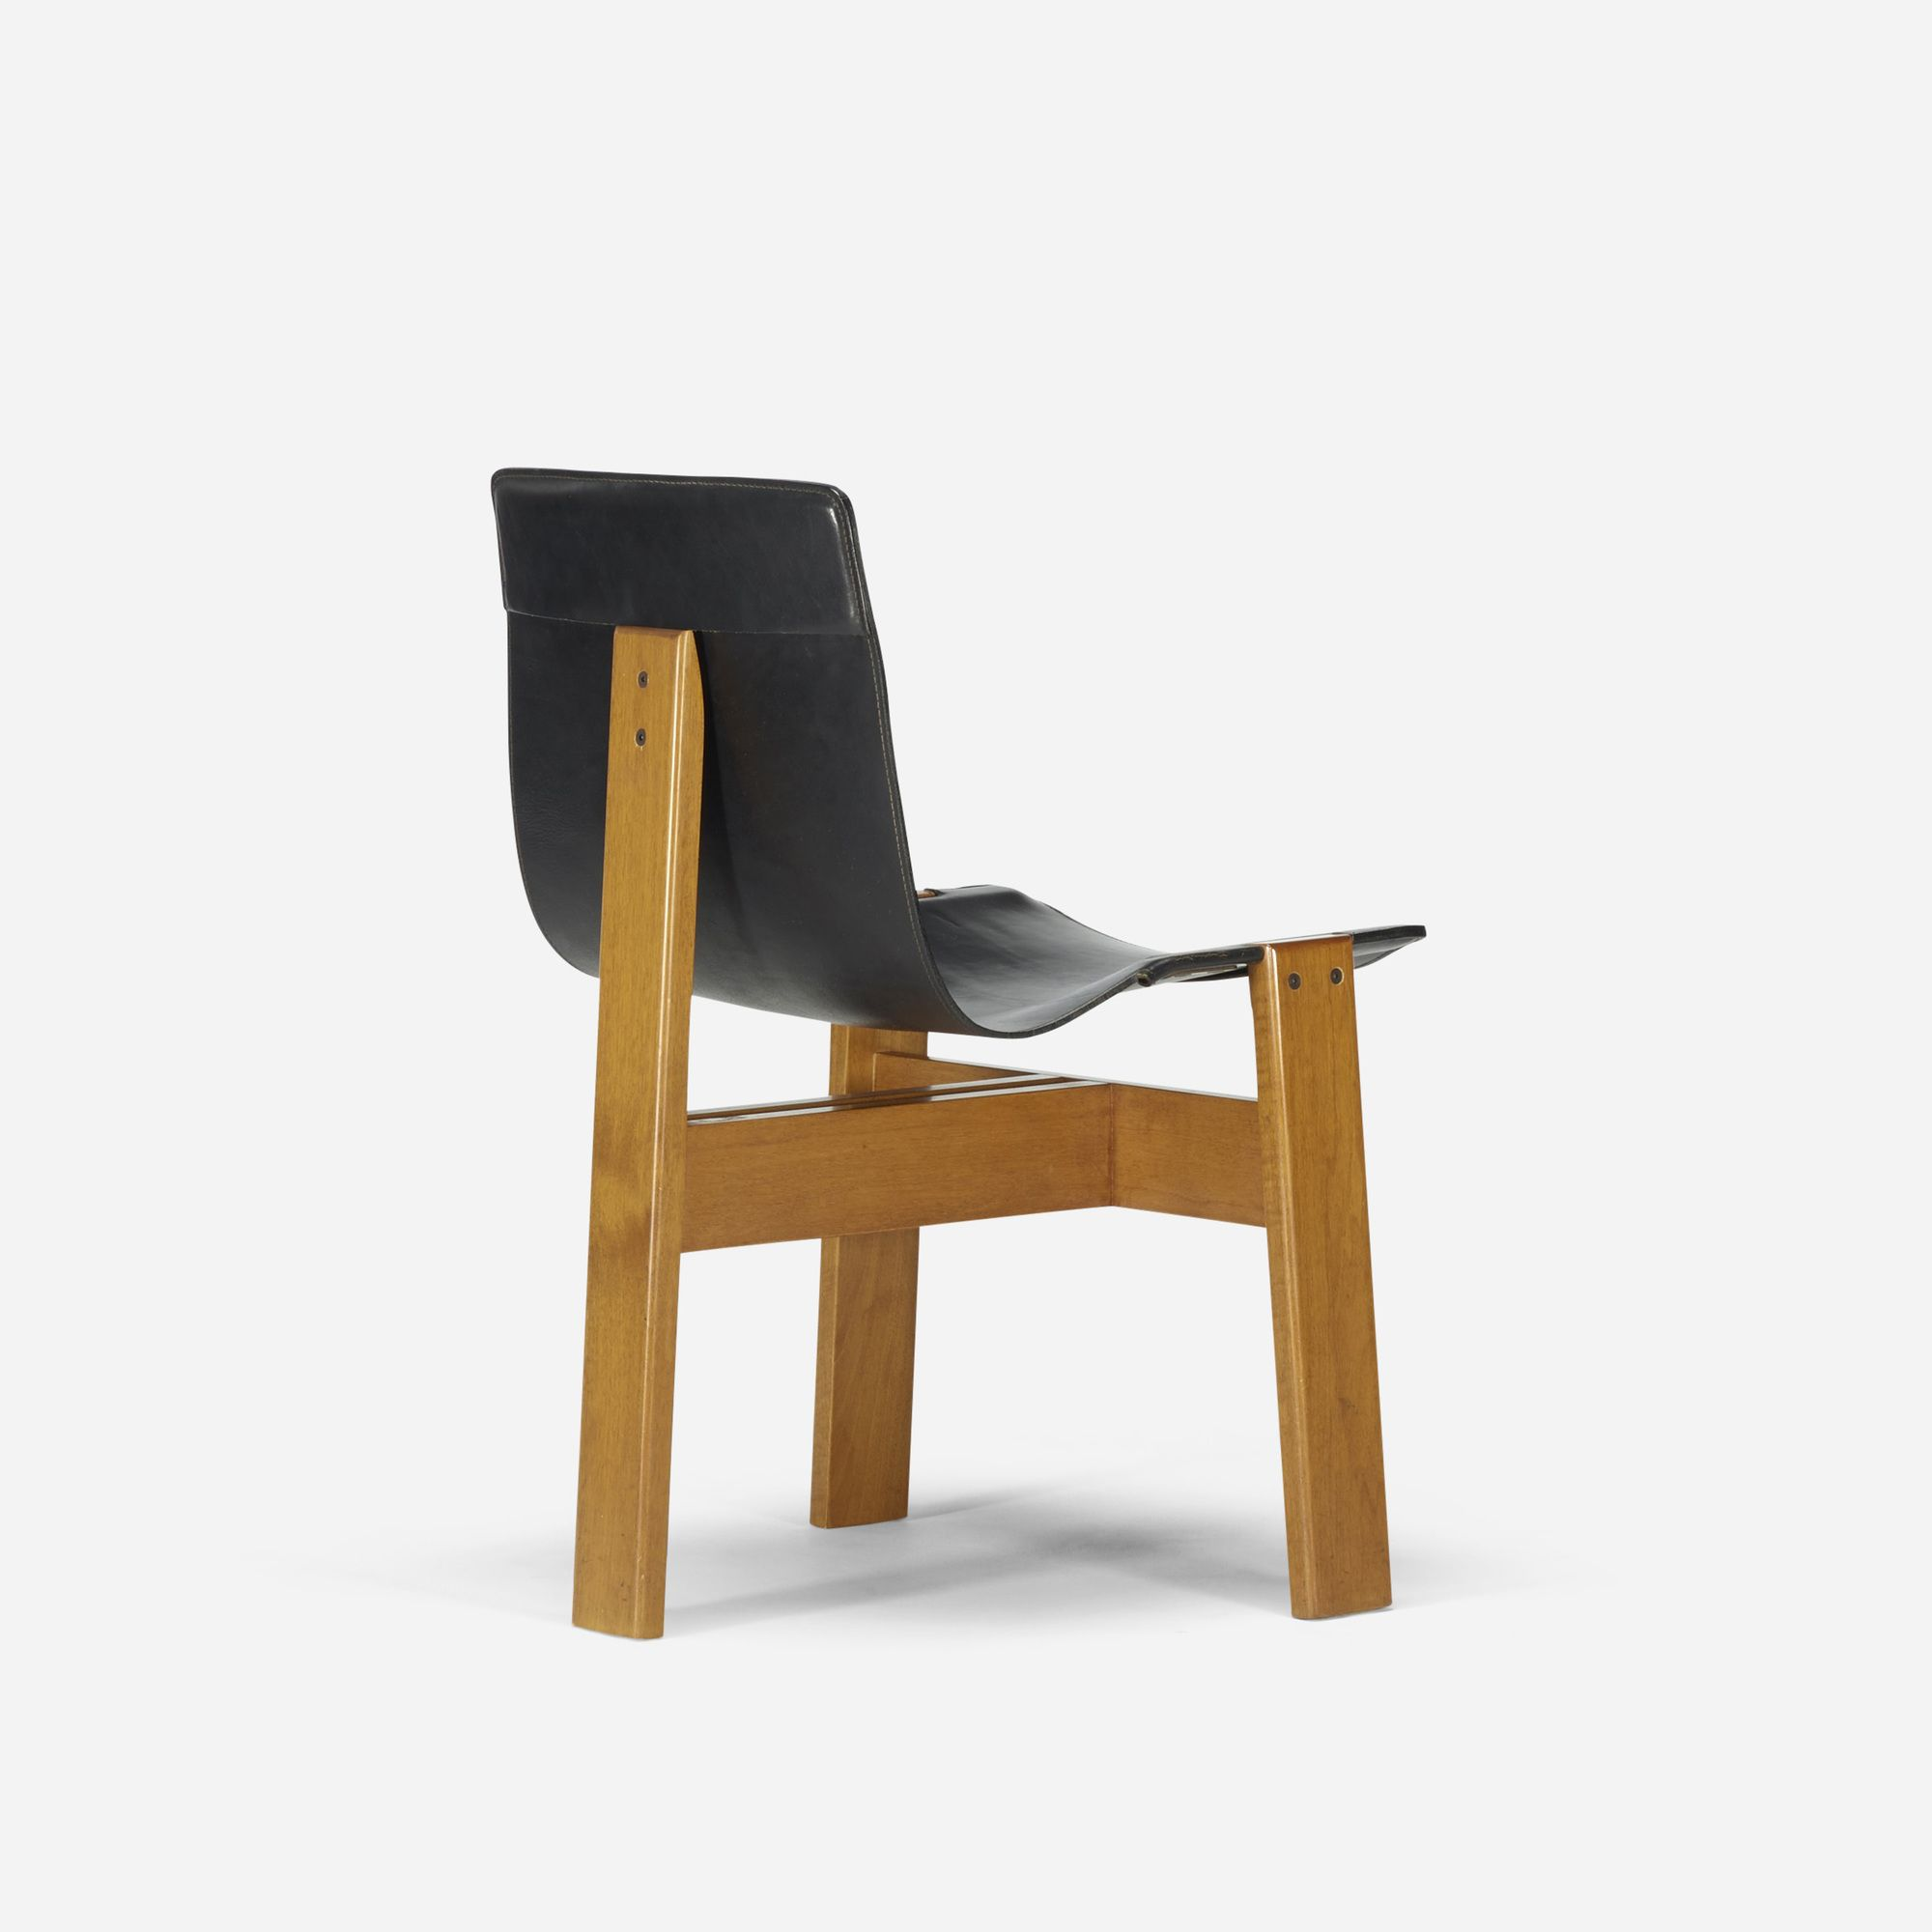 Lot 526 Angelo Mangiarotti Tre 3 Dining Chair 1978 Leather Mahogany 22 W X 21 D X 31 H In Estimate 700 900 Dining Chairs Furniture Chair Chair